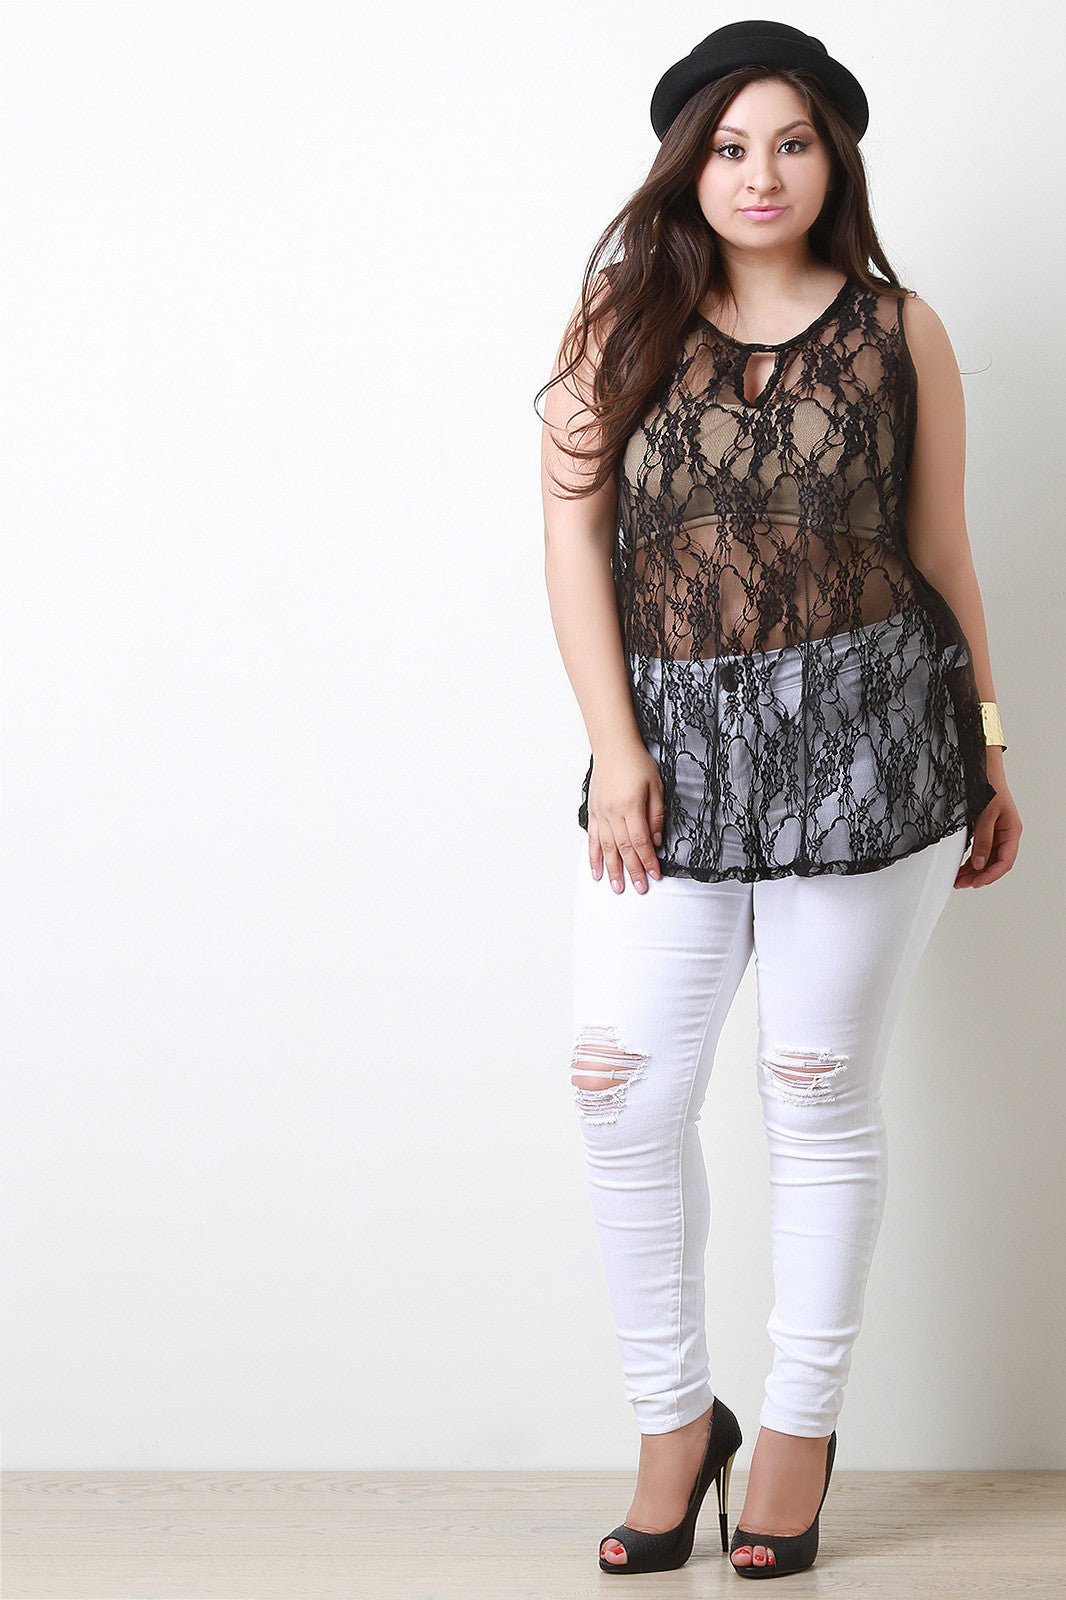 Semi-Sheer Floral Lace Keyhole Sleeveless Top - Thick 'N' Curvy Shop - 9